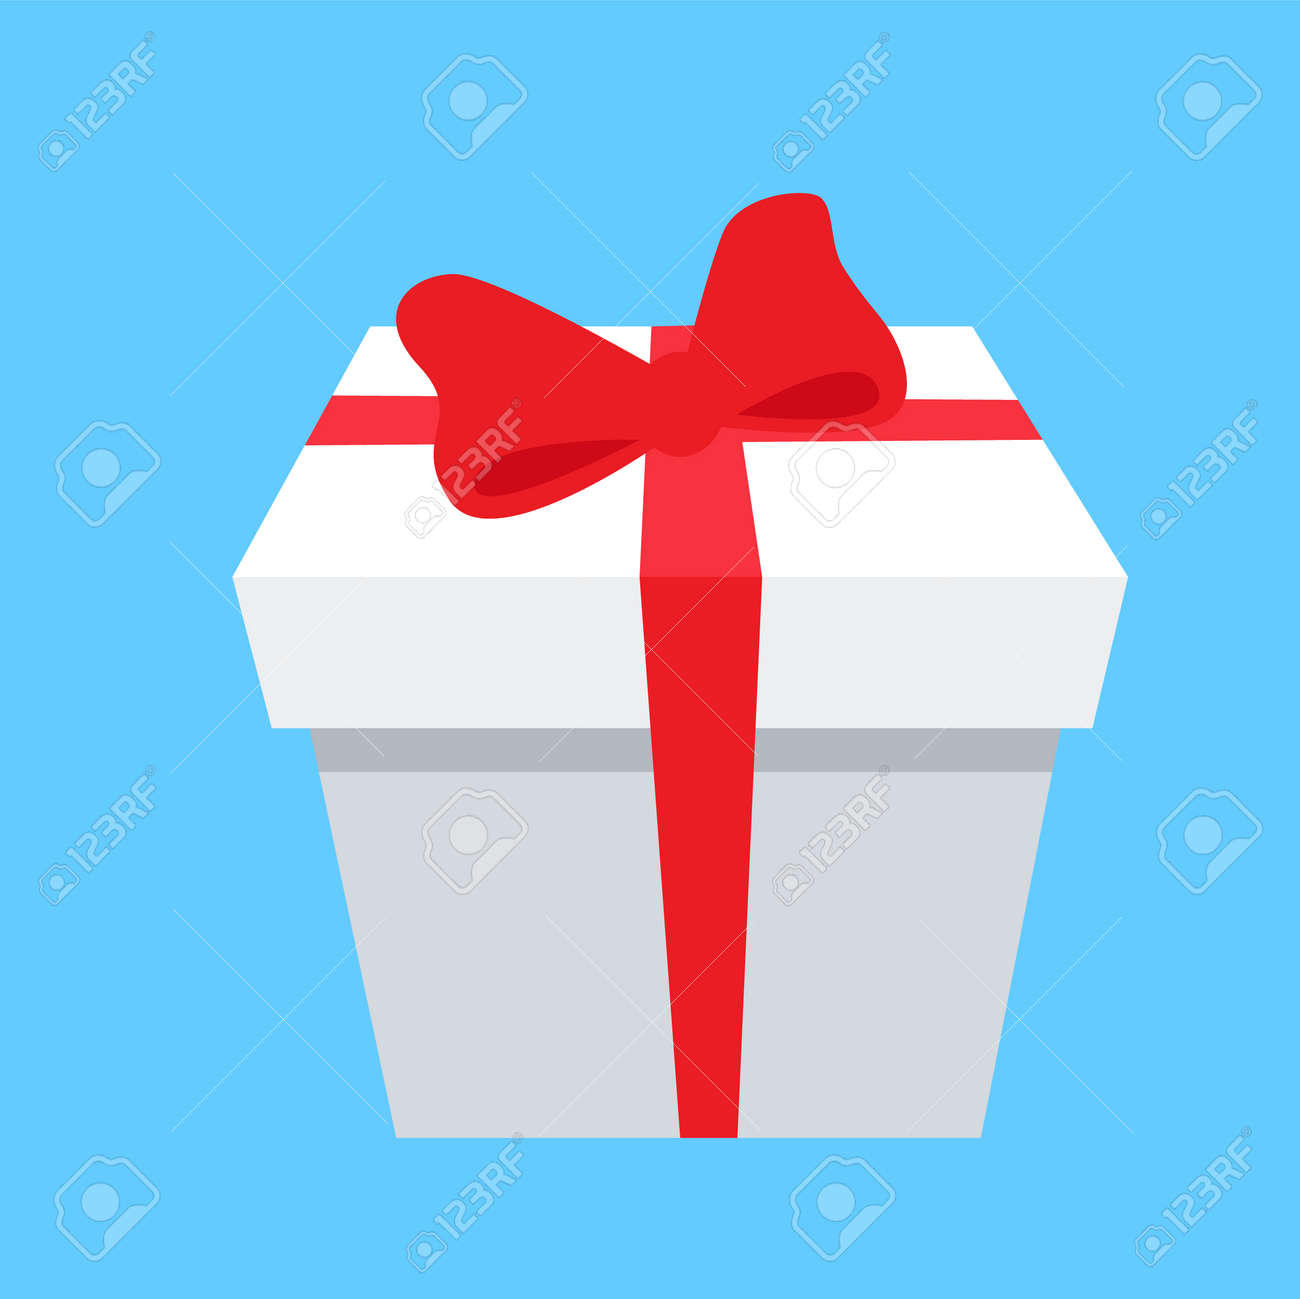 Gift Box Icon With Red Bow And Ribbon Isolated On Blue Background Royalty Free Cliparts Vectors And Stock Illustration Image 92172340